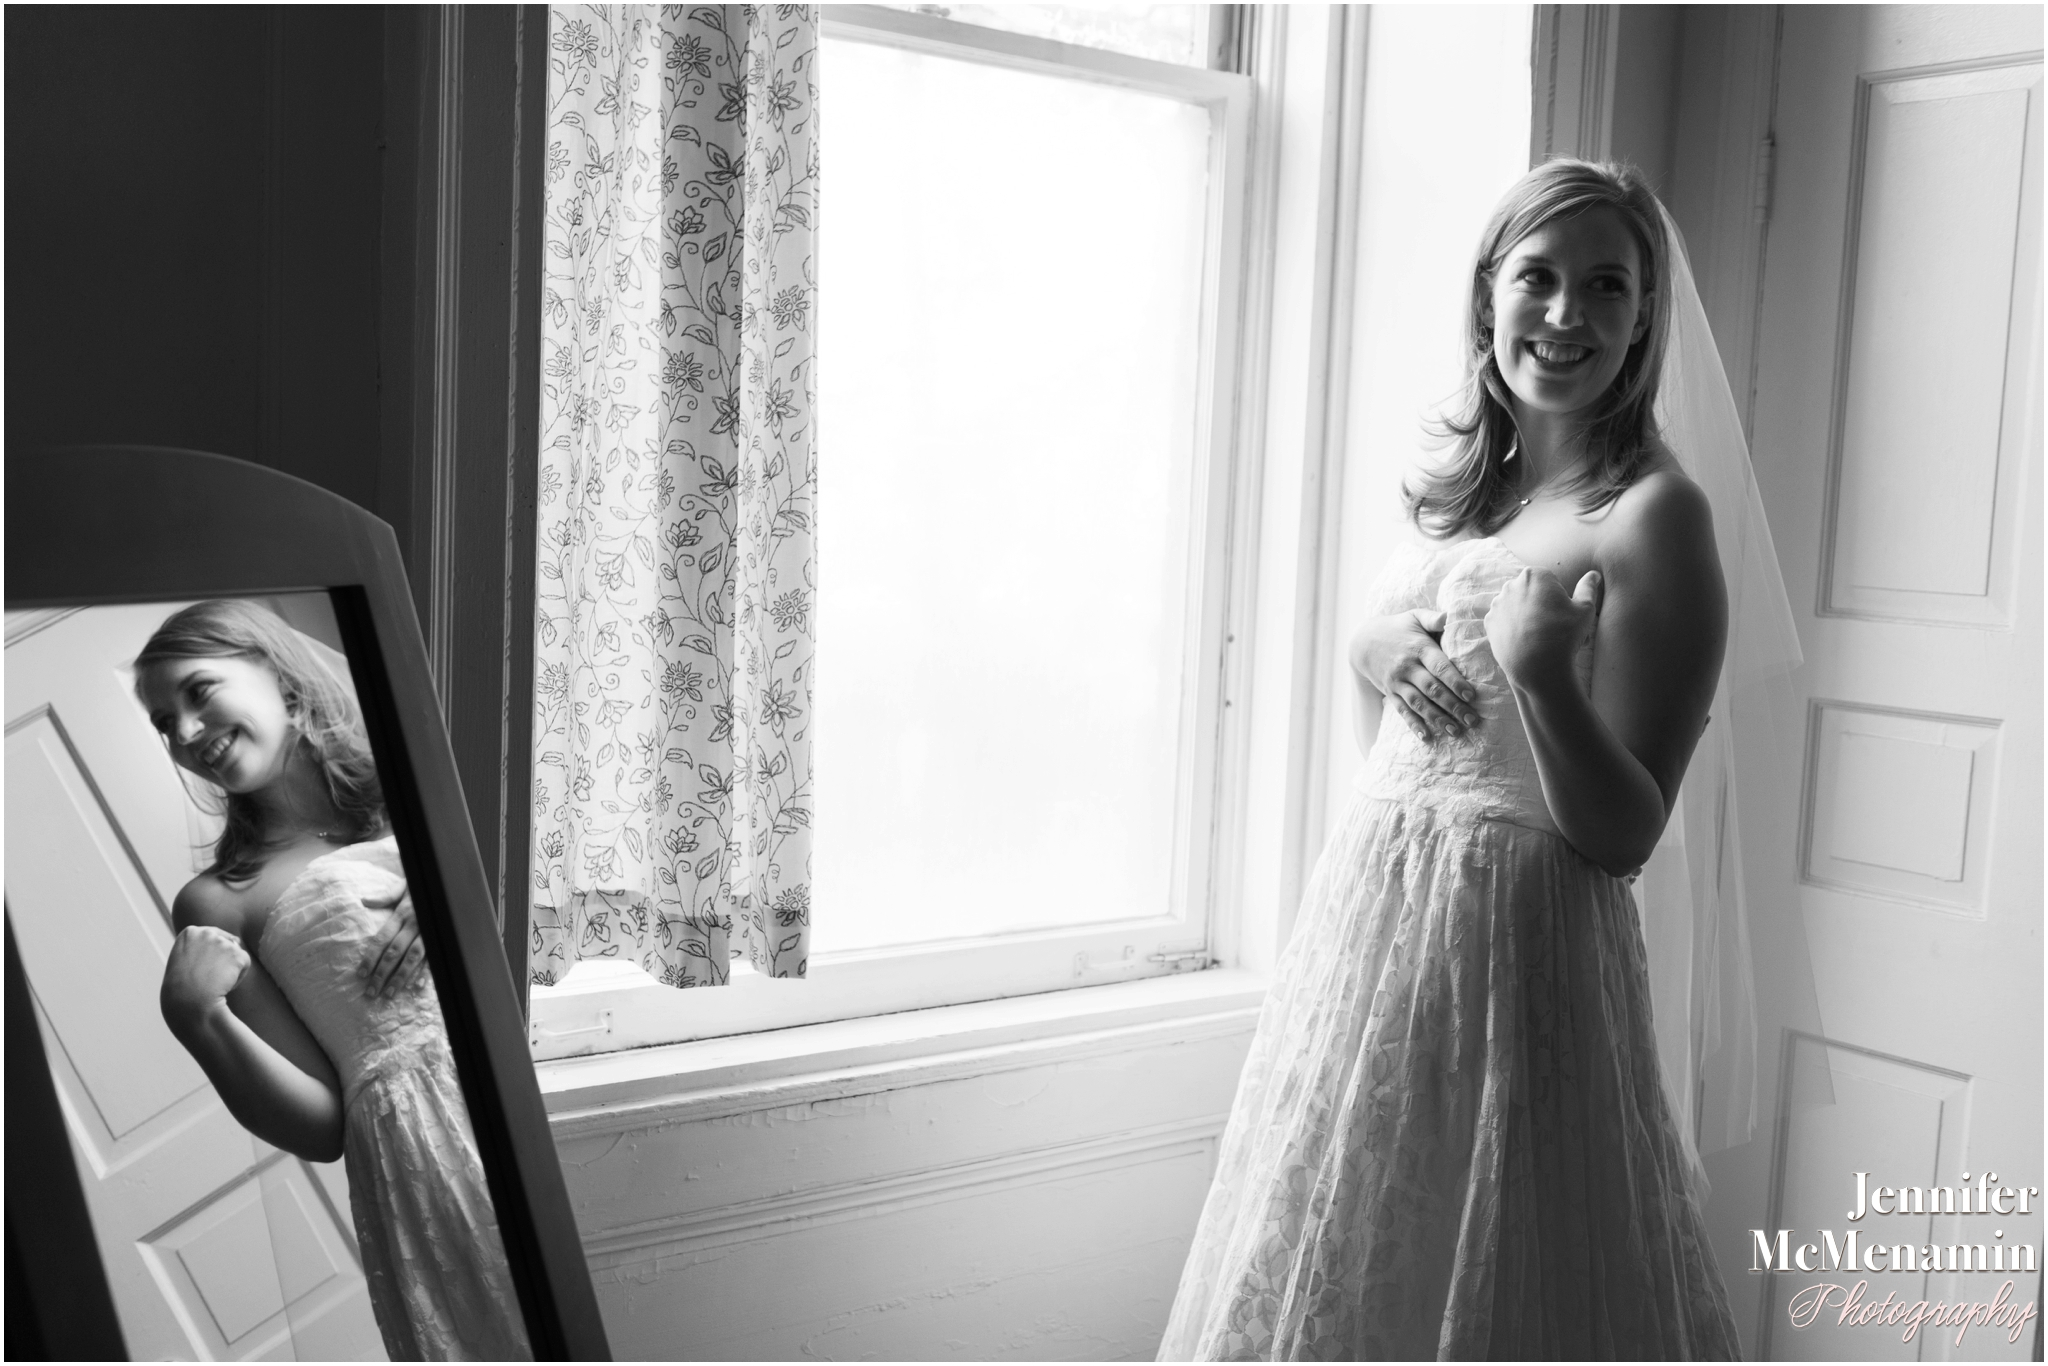 0012-WebbSlivnick_00369bw-0072_JenniferMcMenaminPhotography_George-Peabody-Library-wedding_Baltimore-wedding-photography_Baltimore-wedding-photographer